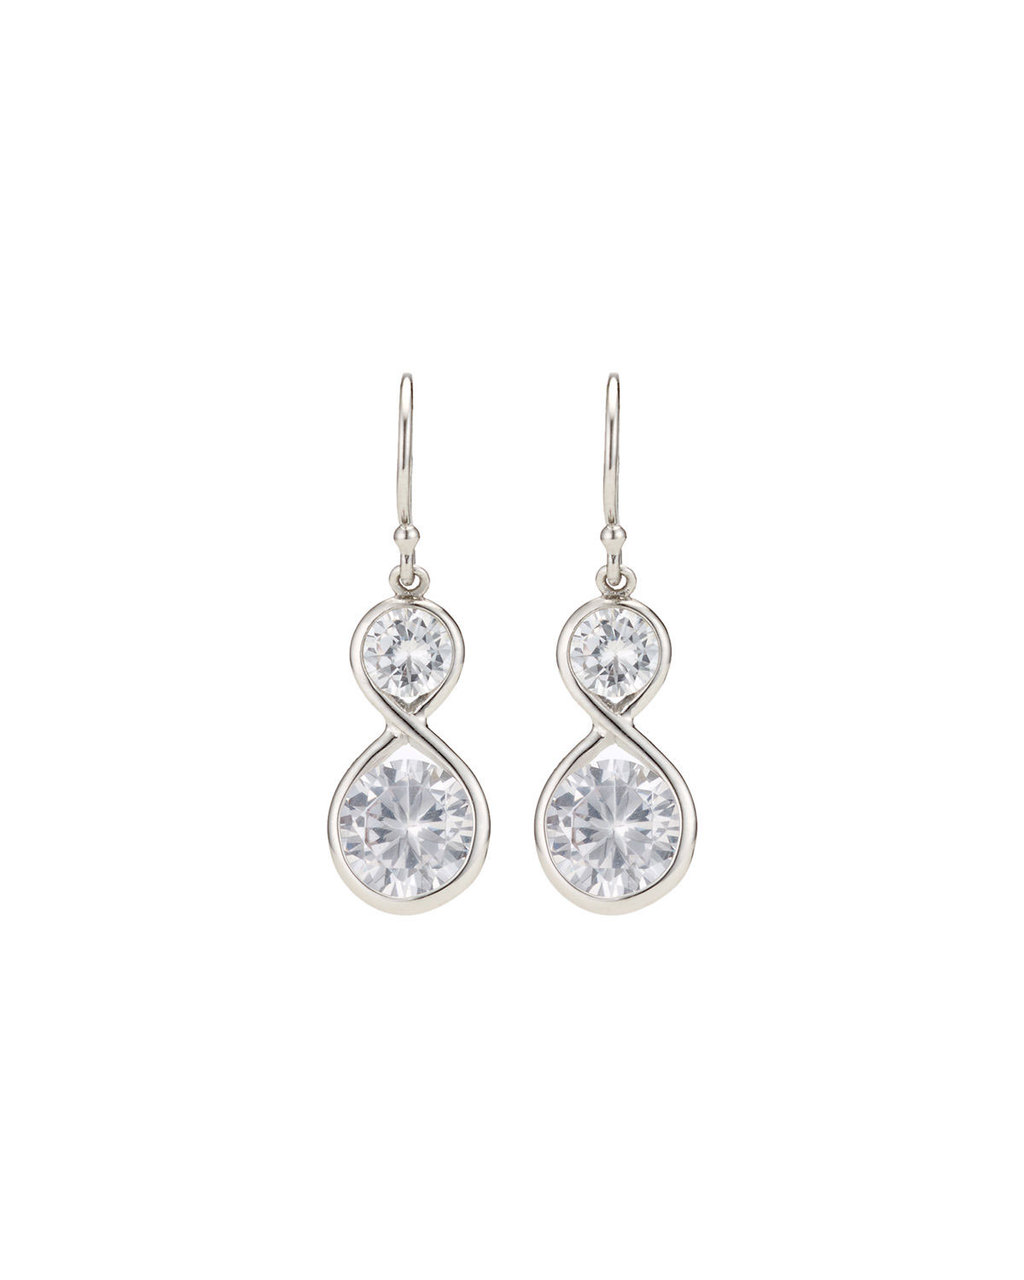 Cubic Zirconia Double Drop Earrings - predominant colour: silver; occasions: evening, occasion; style: drop; length: long; size: standard; material: chain/metal; fastening: pierced; finish: metallic; embellishment: crystals/glass; season: s/s 2016; wardrobe: event